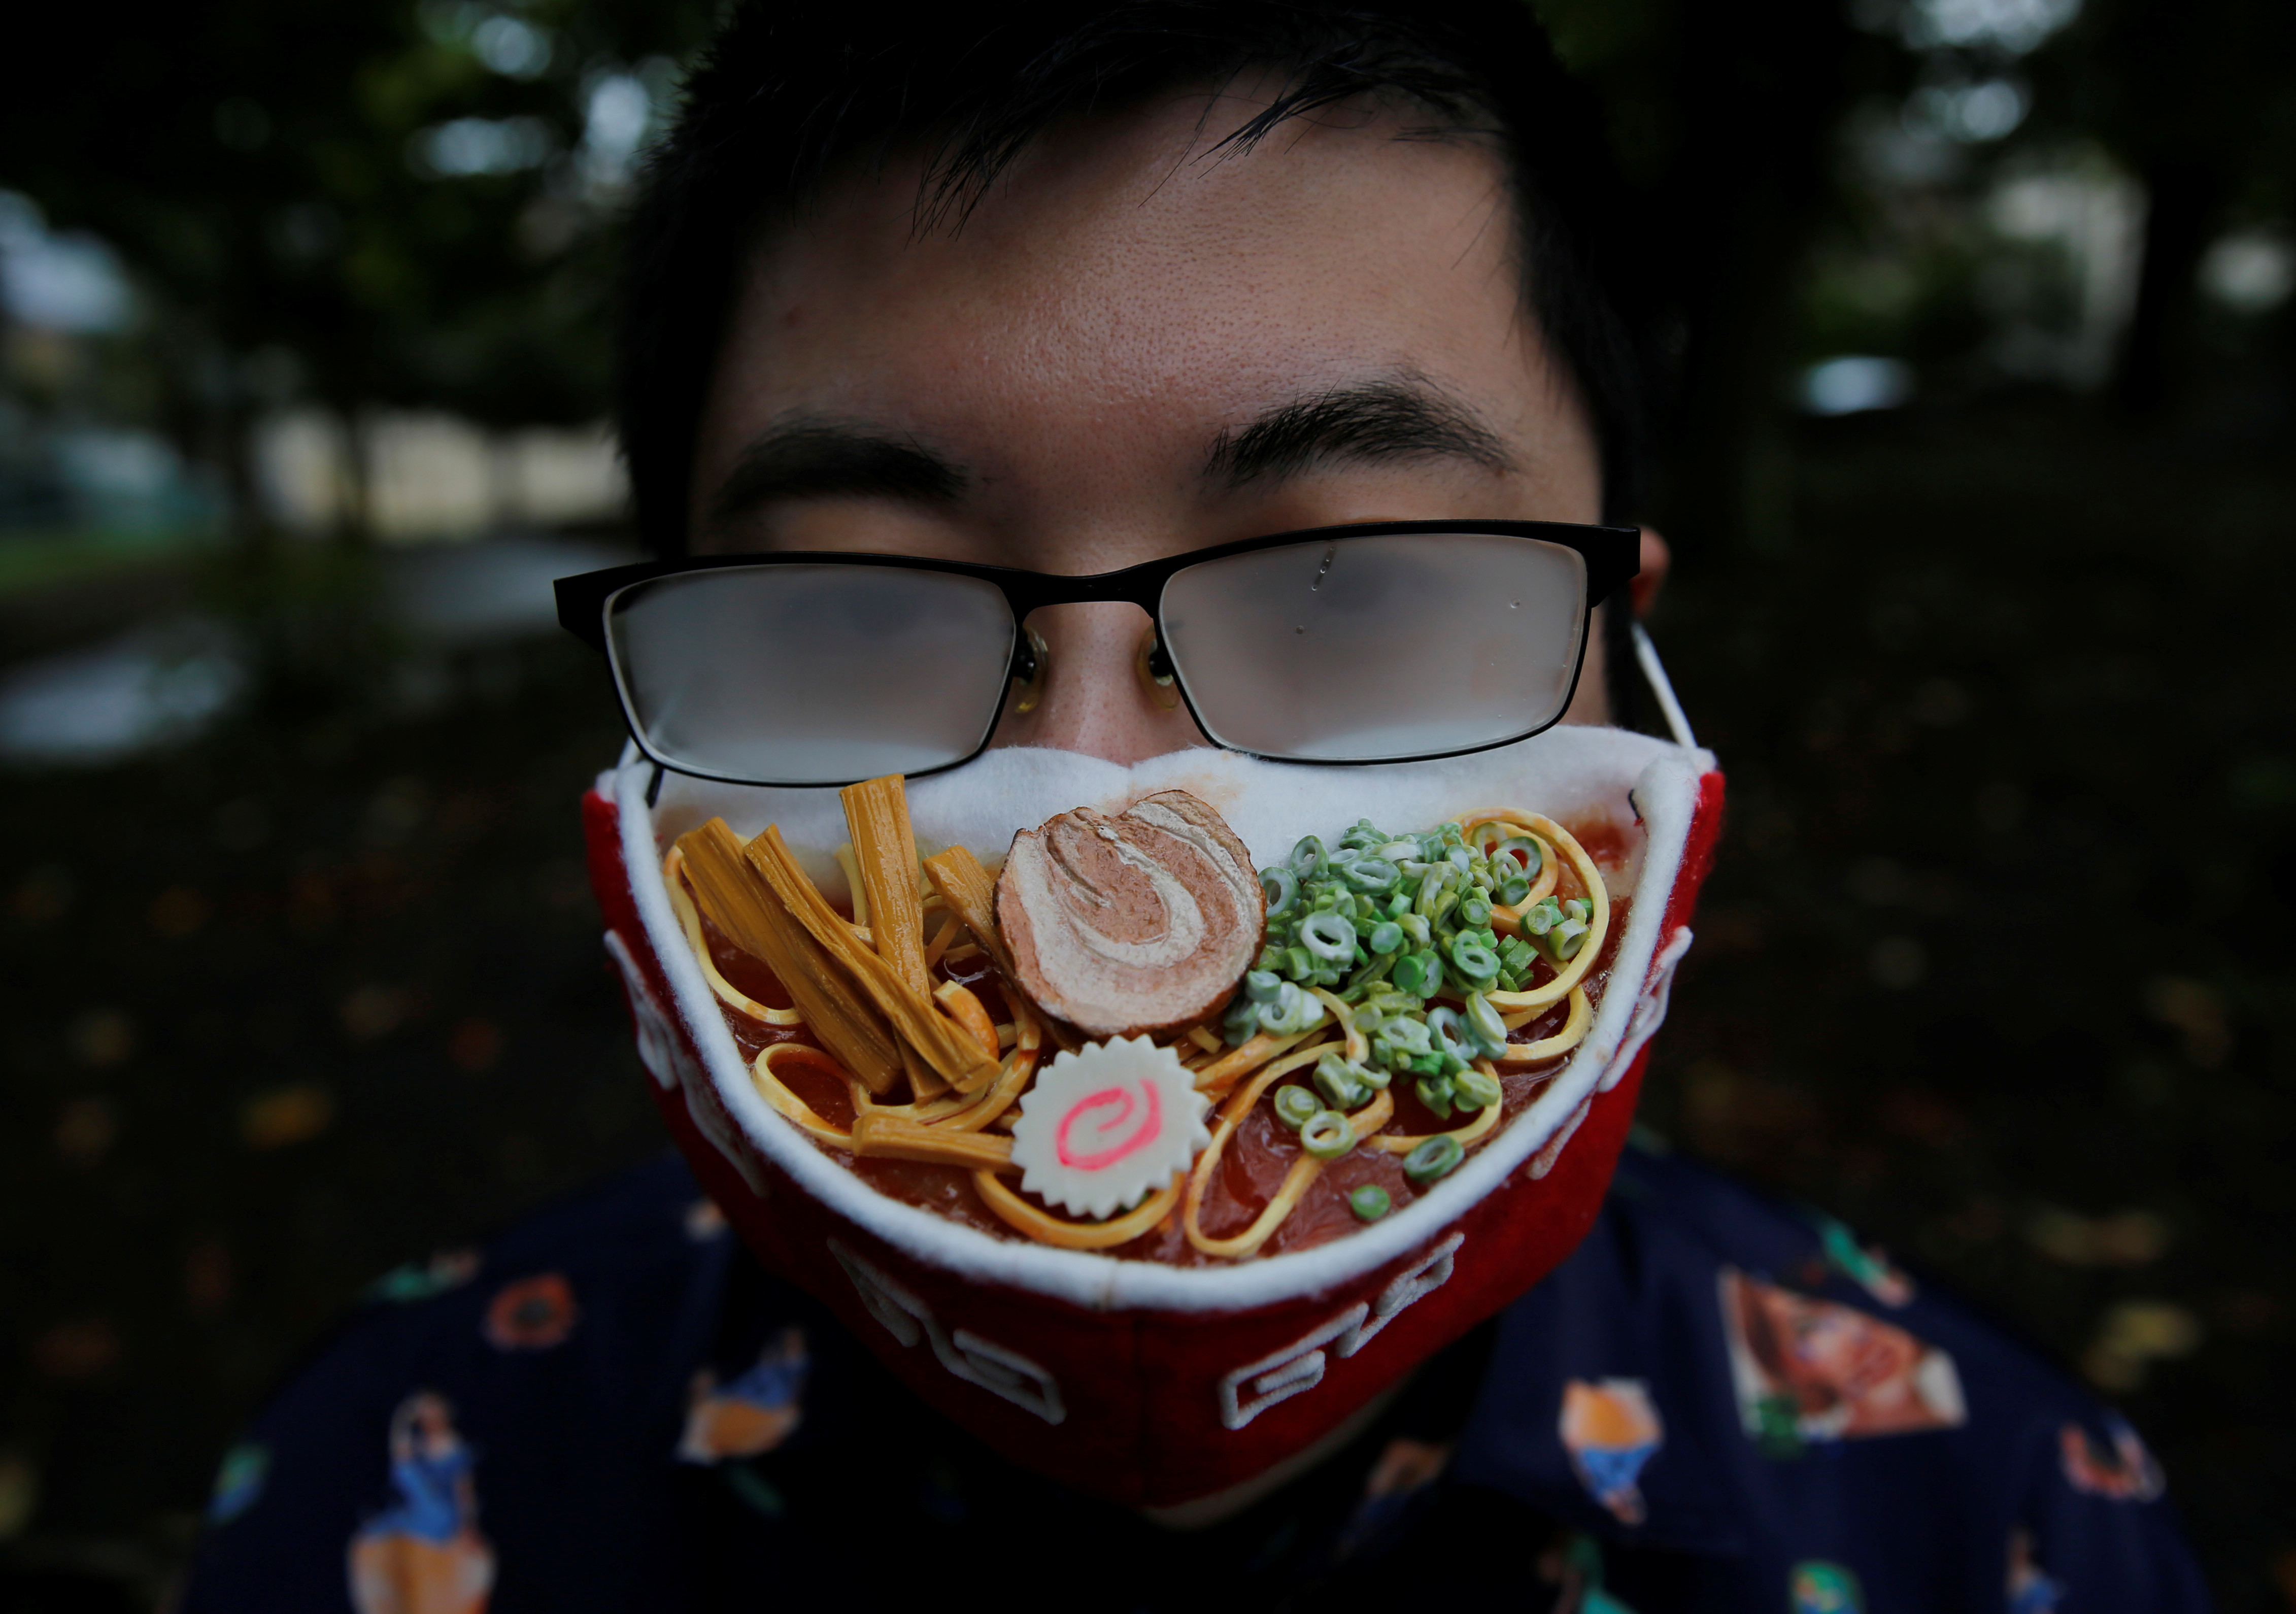 Japanese designer Takahiro Shibata's glasses fog up as he wears a protective mask that looks like a steaming bowl of ramen noodle soup while posing for a photo at a park, following the coronavirus disease (COVID-19) outbreak in Yokohama, Japan September 23, 2020. REUTERS/Kim Kyung-Hoon - RC2T4J91PDR9